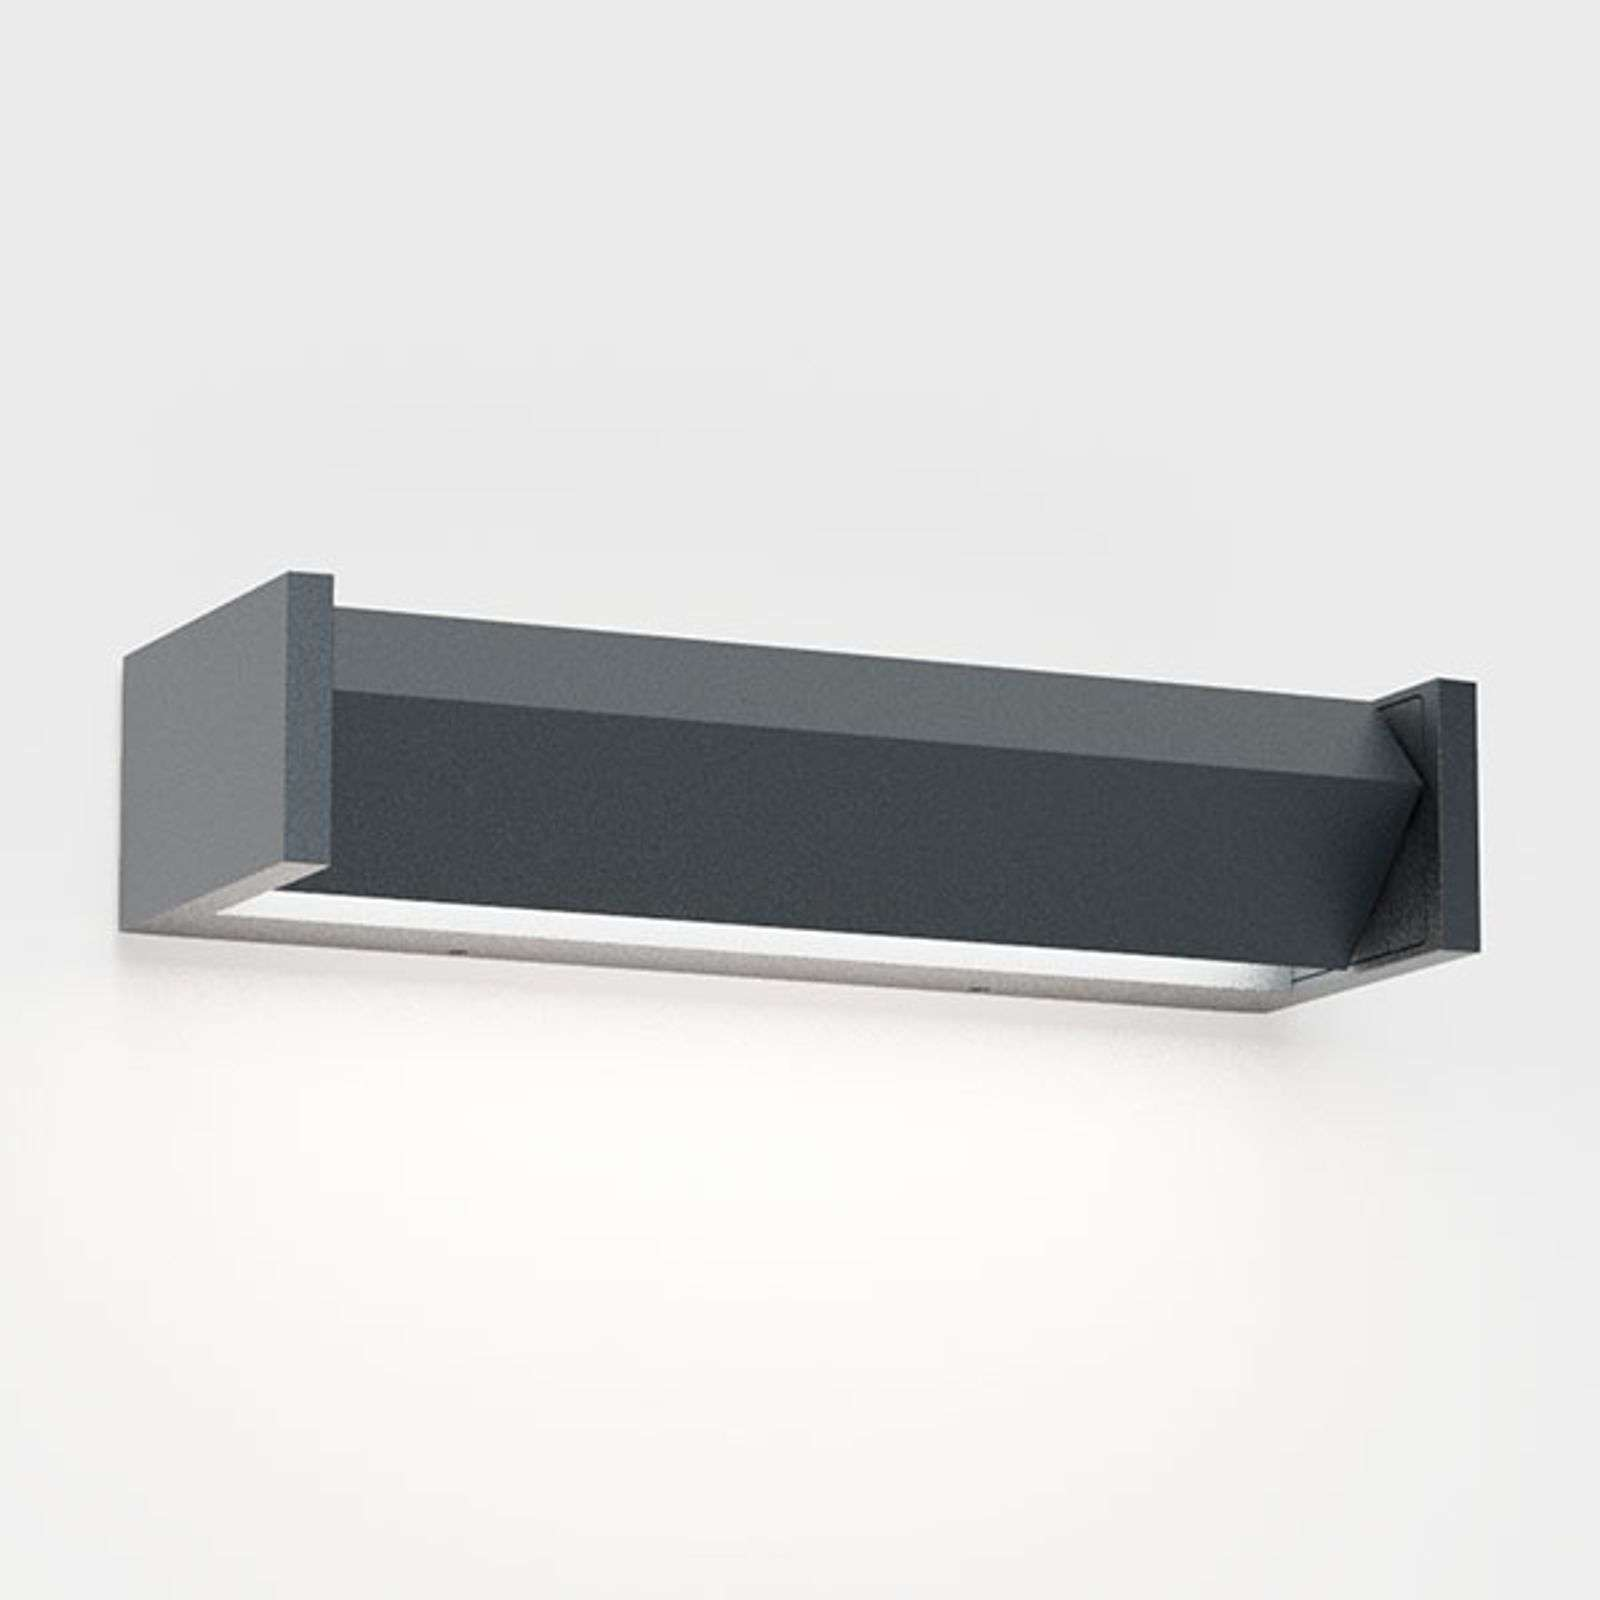 IP44.de Slat One LED buitenwandlamp, antraciet